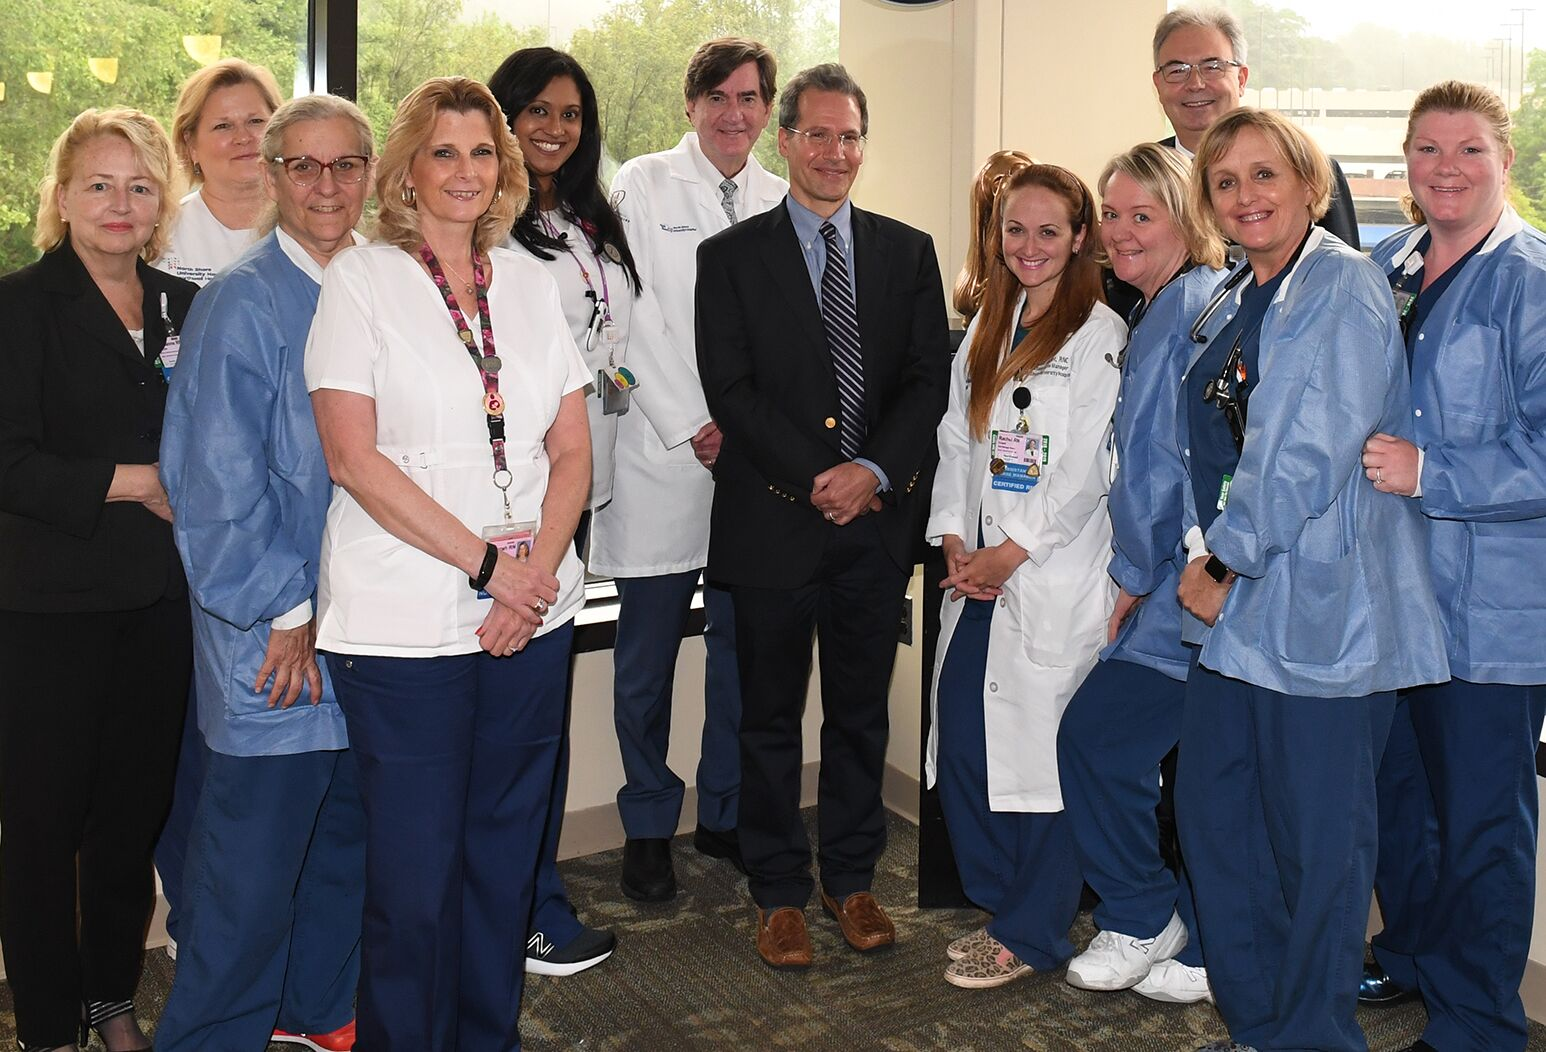 Marianne McTyre, RN, director of Patient Care Services (far left); Dr. Burton Rochelson, chief of Maternal Fetal Medicine (6th from left); Dr. Greg Palleschi, director of OB Anesthesiology (7th); and Dr. Leo Penzi, vice chair of Anesthesiology (10th).